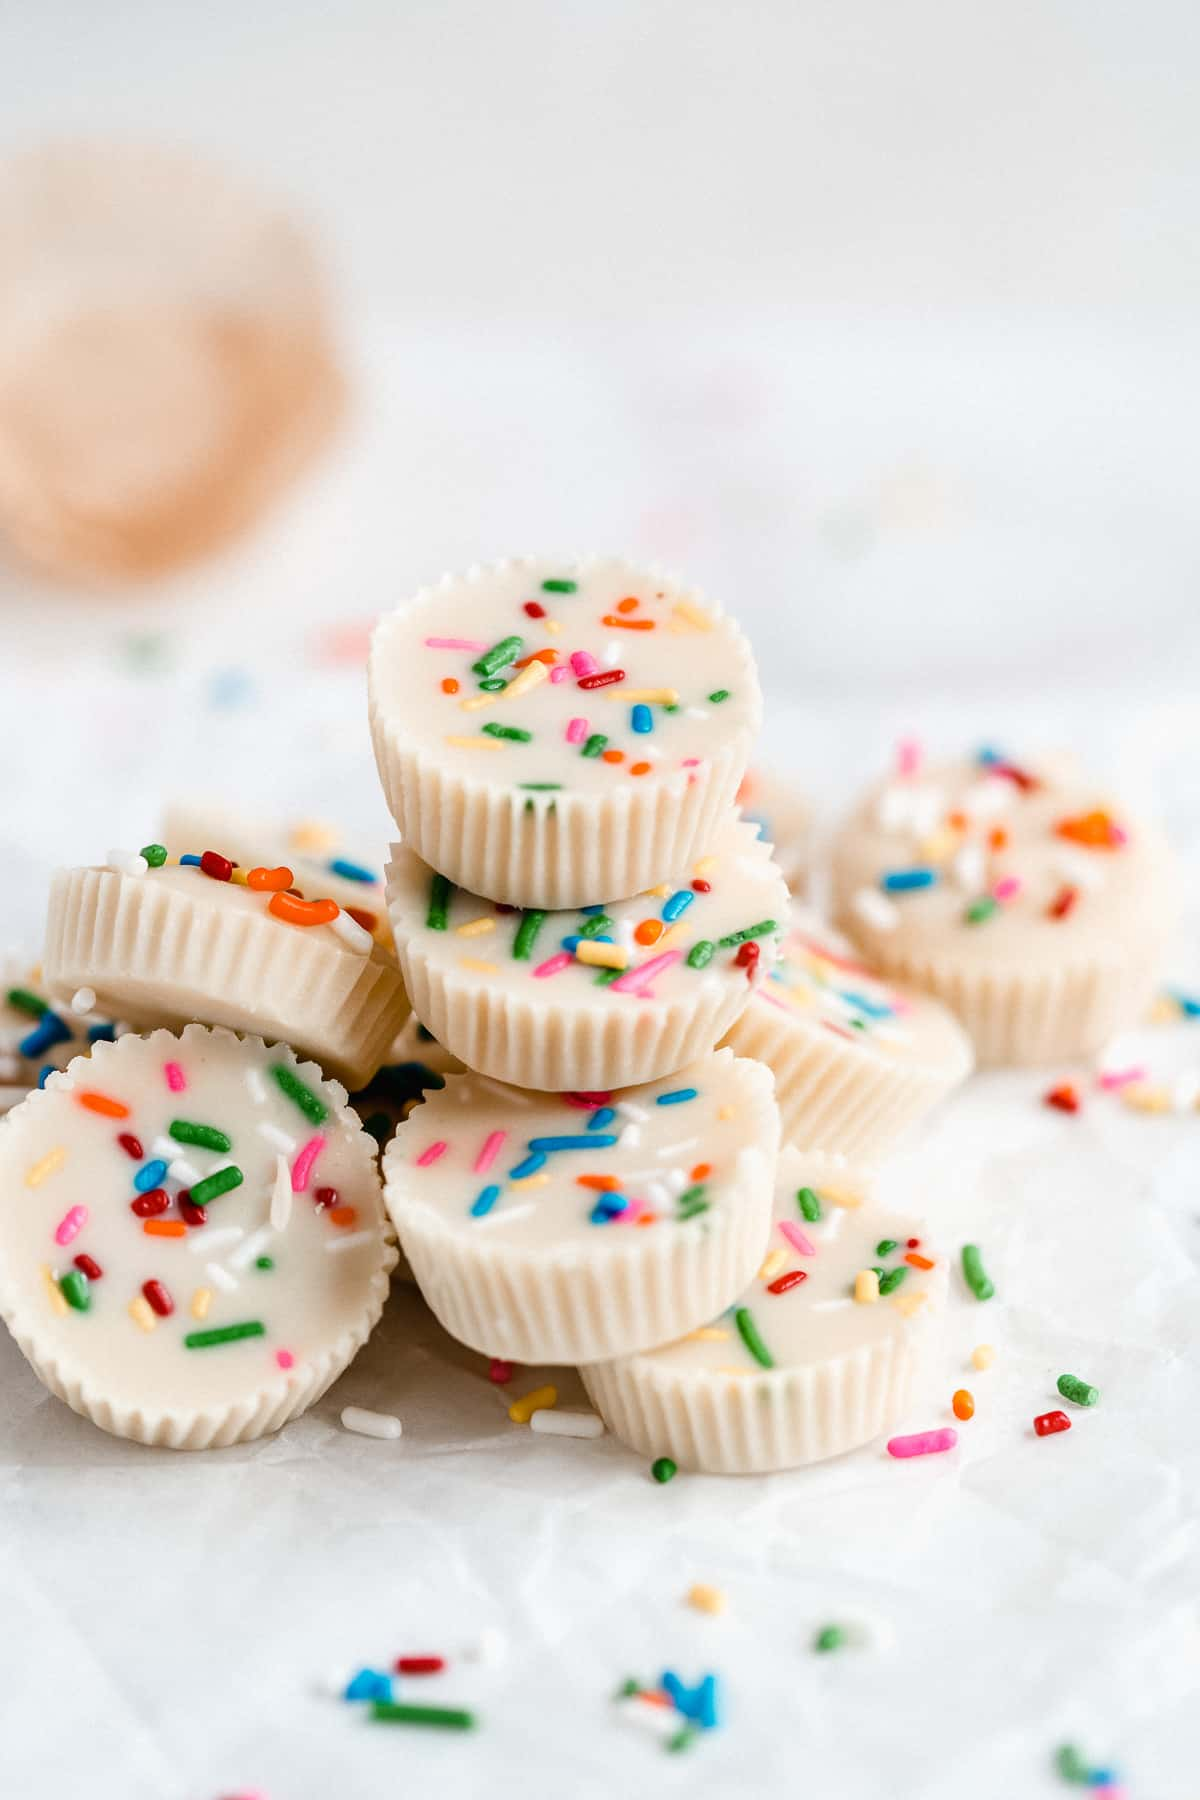 Pile of white chocolate peanut butter cups on white parchment paper with rainbow sprinkles